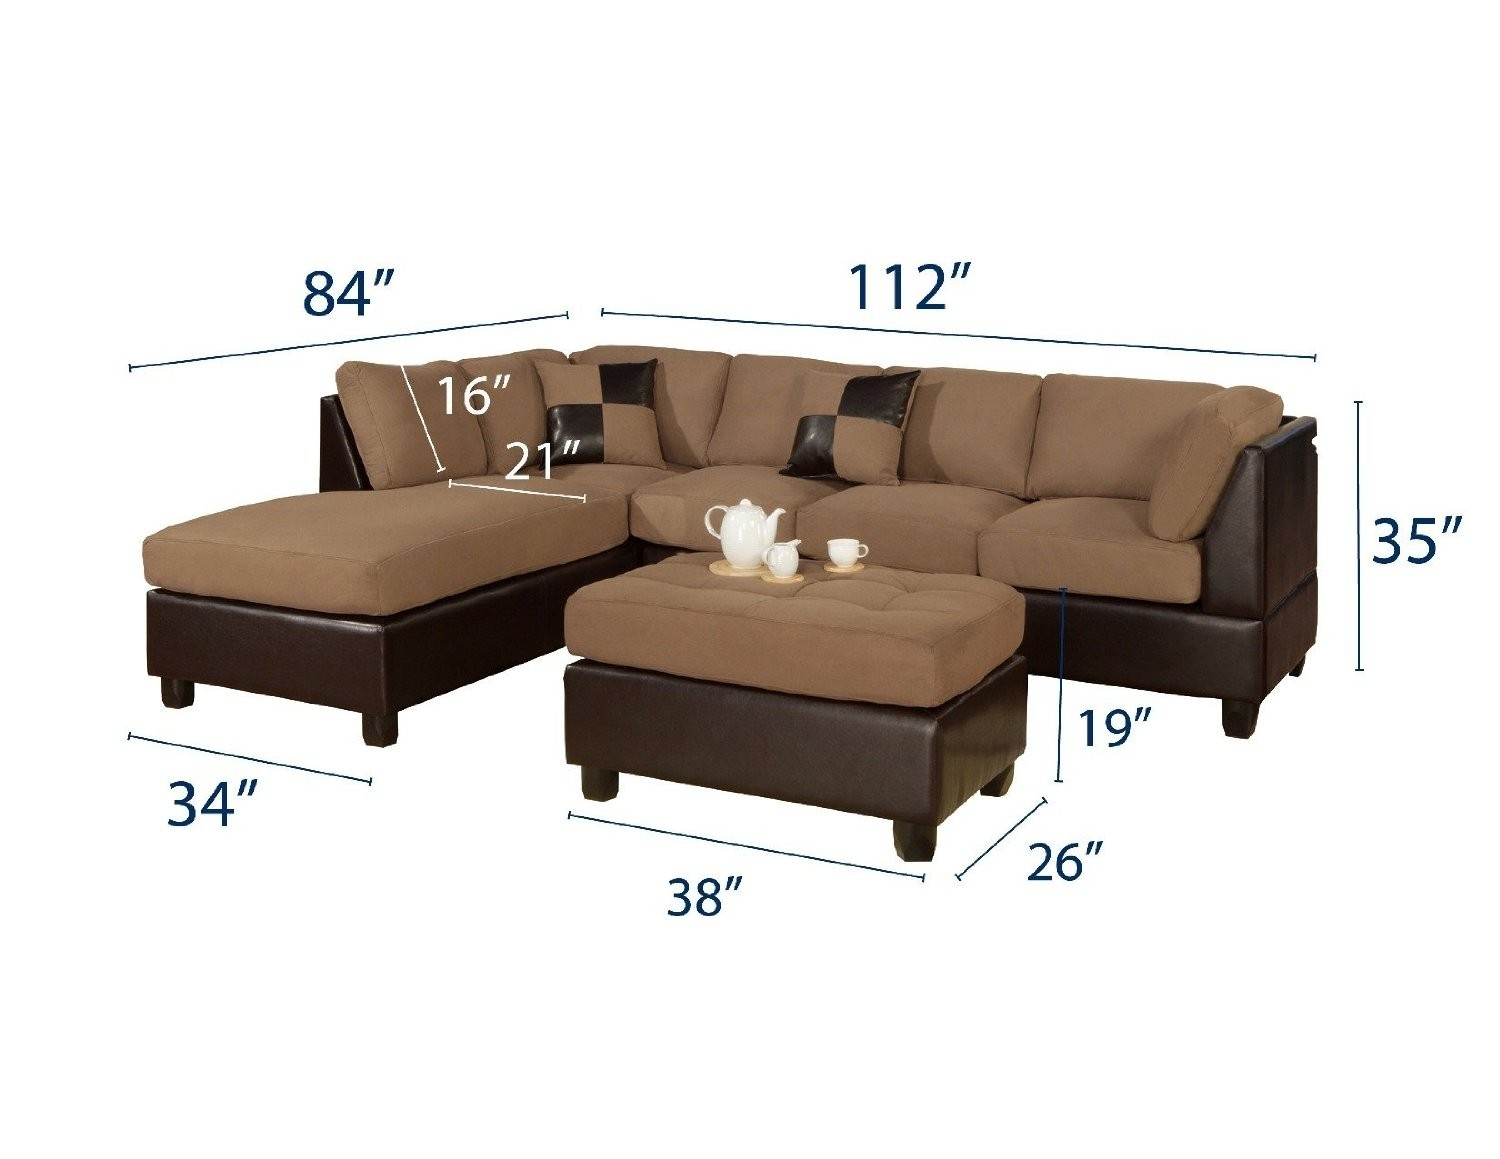 84 Inch Sectional Sofa Inspirational Magnolia Homejoanna Gaines With Magnolia Home Homestead 3 Piece Sectionals By Joanna Gaines (Image 2 of 25)